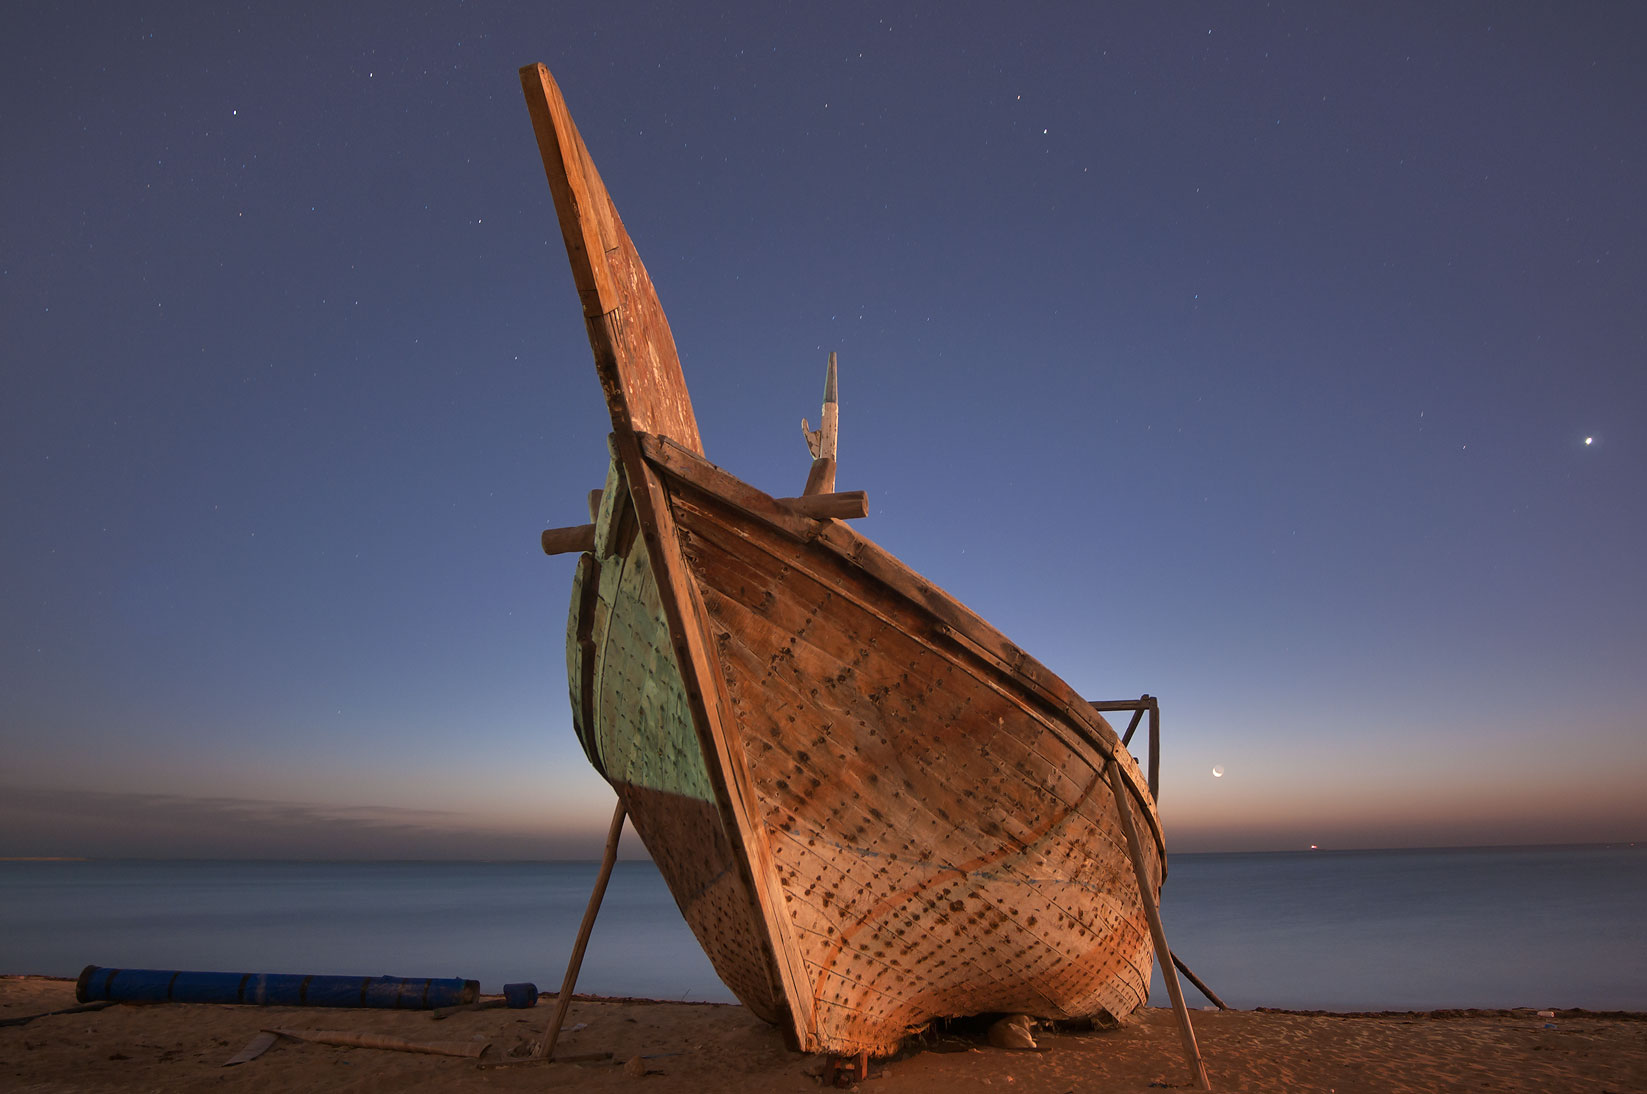 Beached dhow boat at morning dusk. Al Wakrah, Qatar